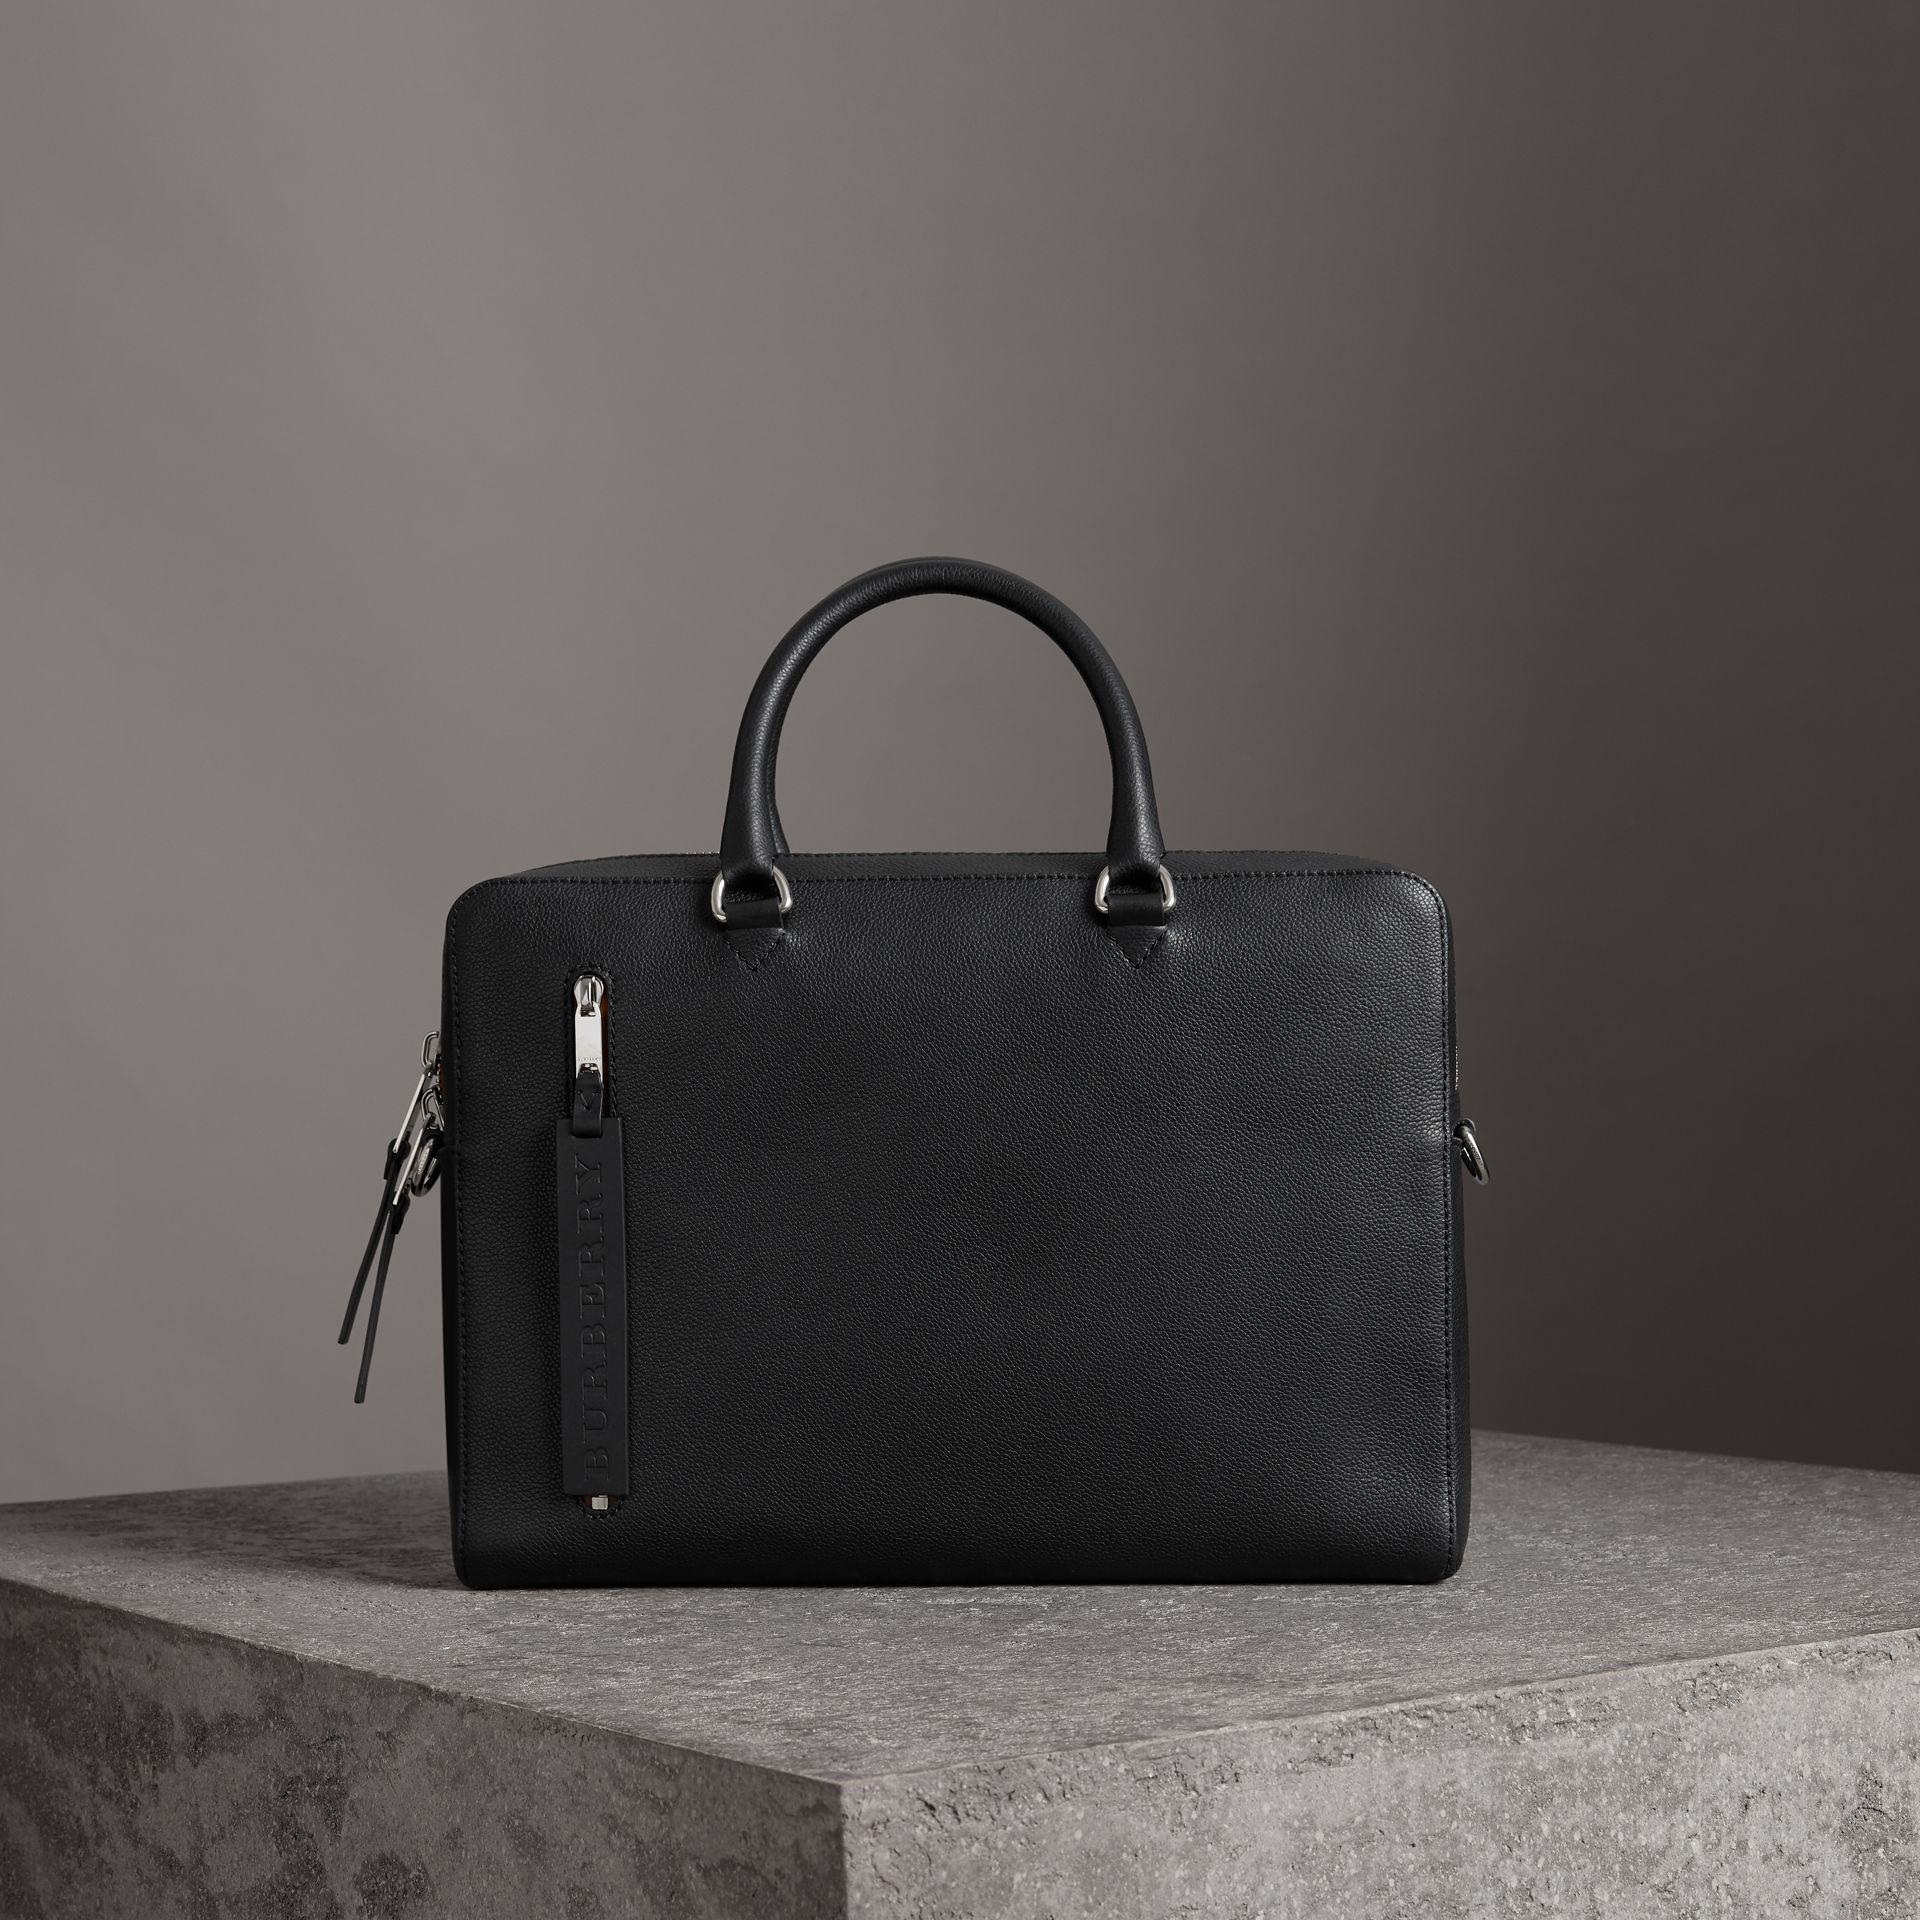 537a281bc817 Burberry Grainy Leather Briefcase in Black for Men - Lyst